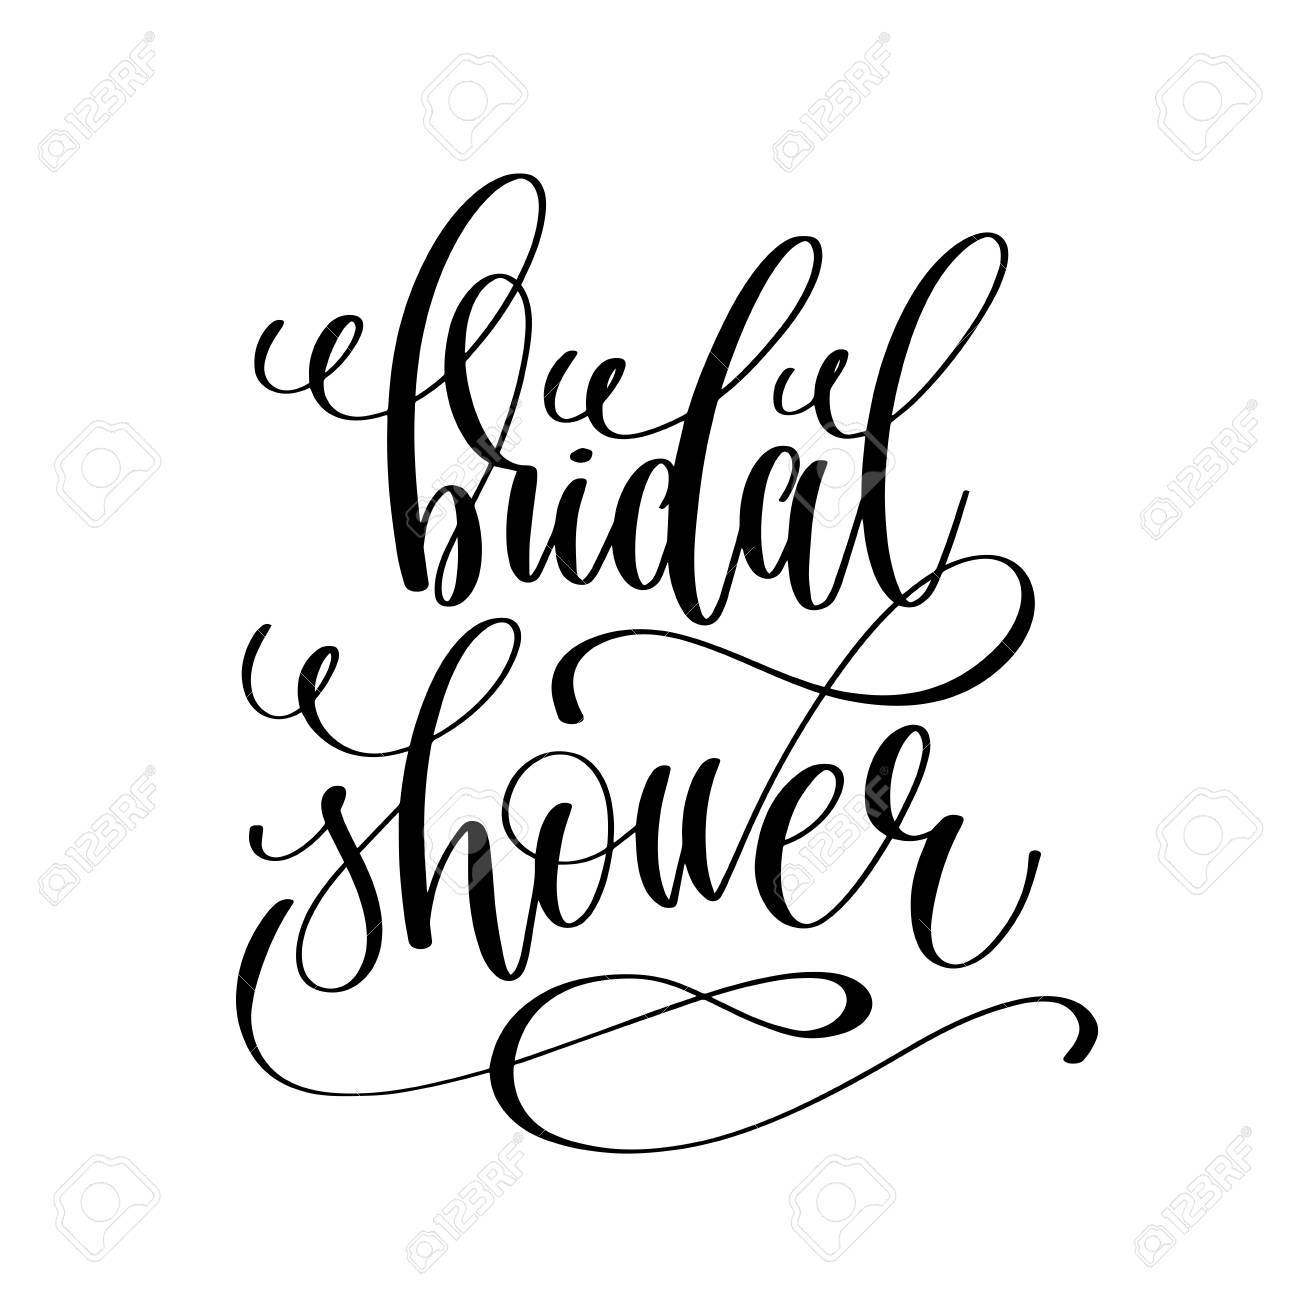 bridal shower black and white hand lettering script royalty free rh 123rf com free clipart images for bridal shower